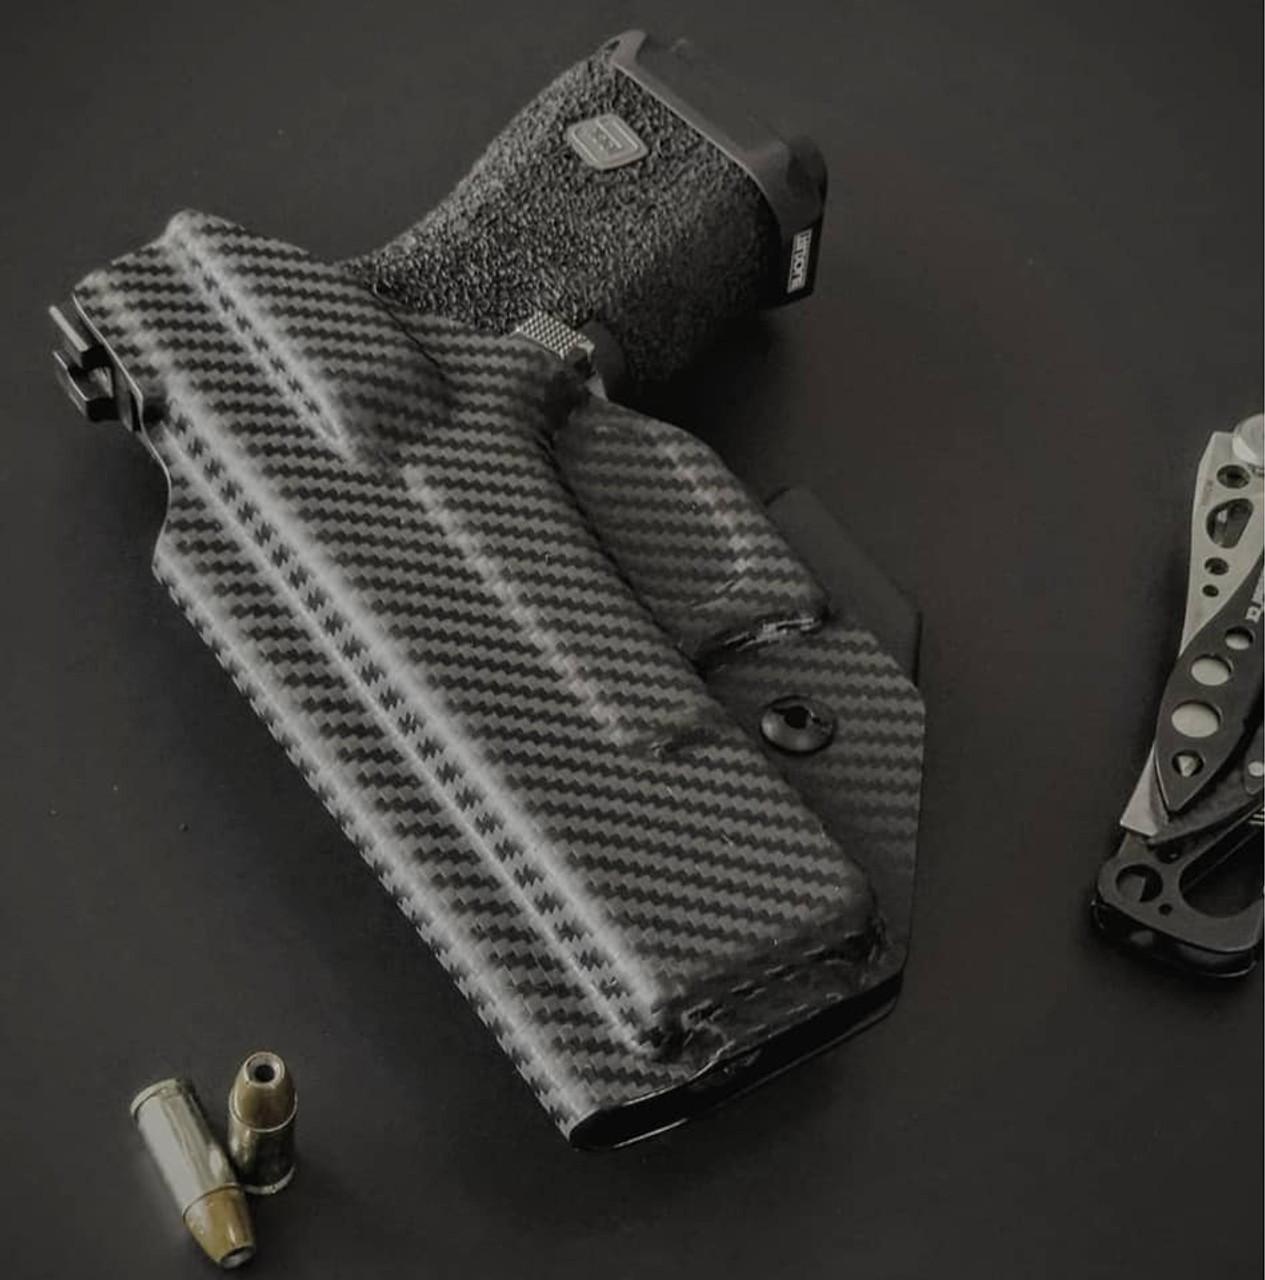 Glock 19 Carbon Fiber Appendix Carry Kydex Holster